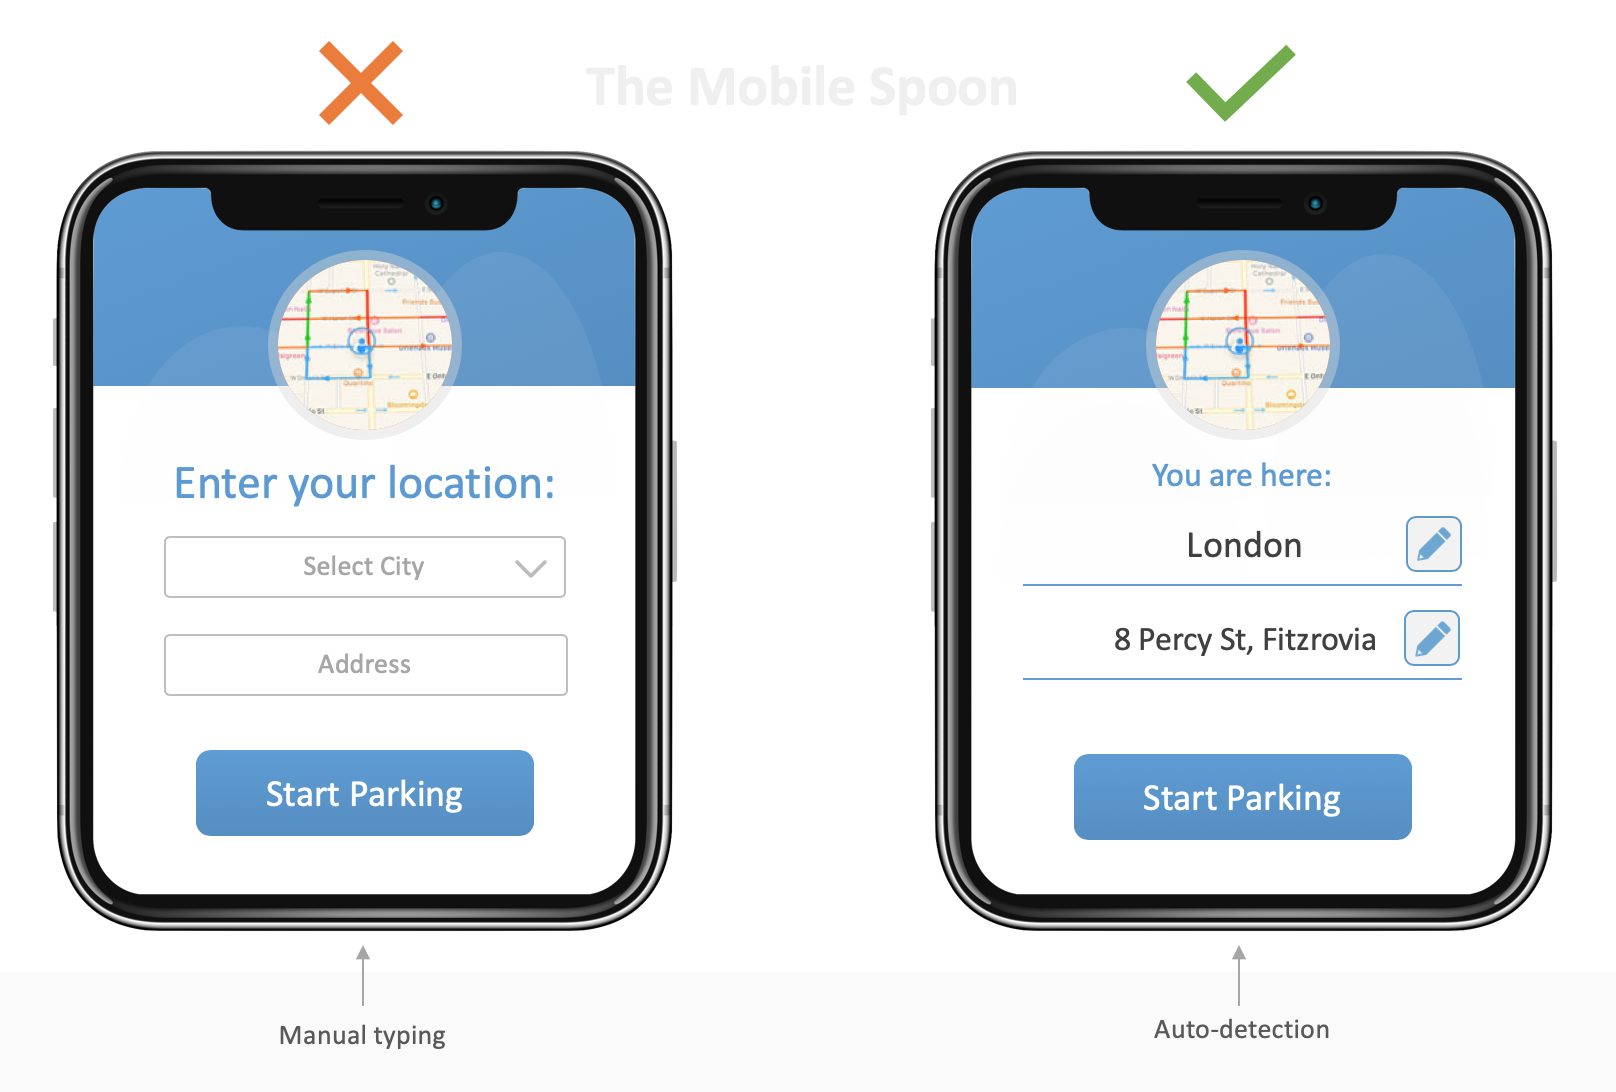 When you park your car, grab your stuff and start walking - you need that parking app to instantly detect your location and save the manual typing.